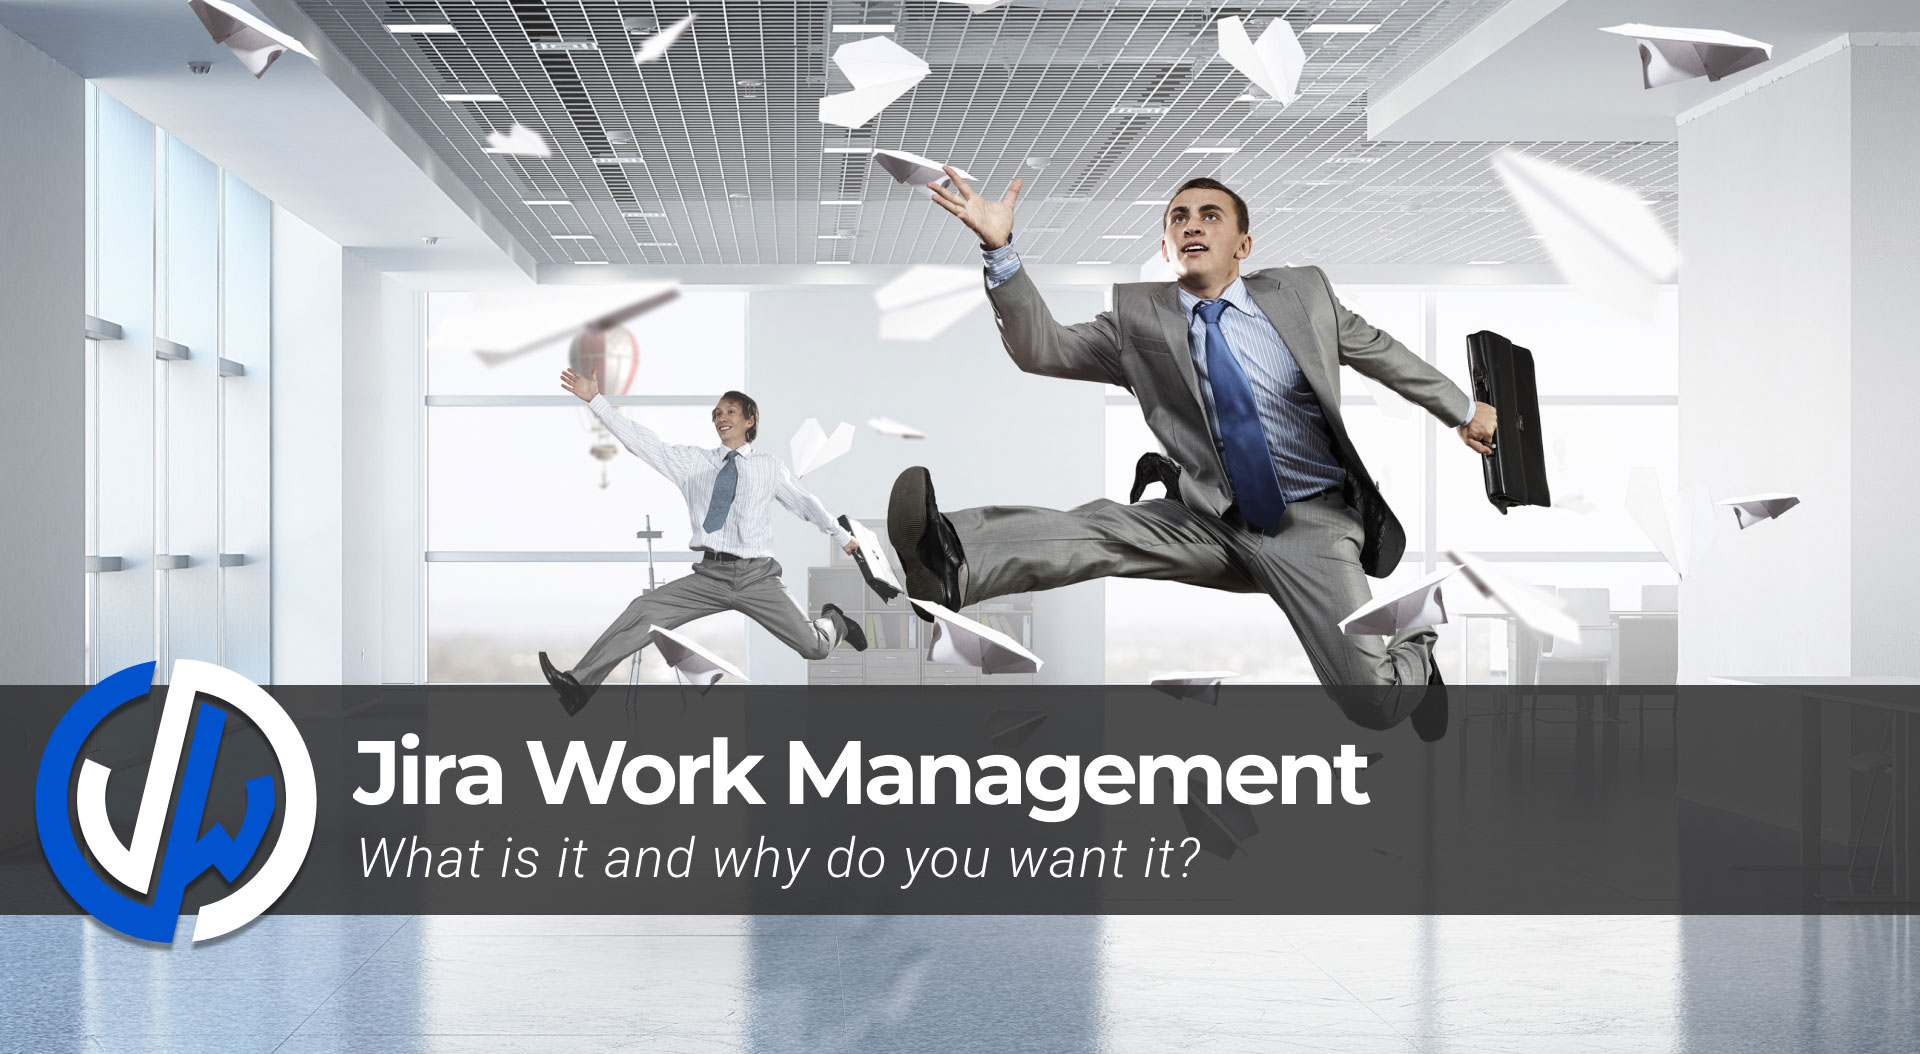 Jira Work Management - What is it and why do you want it?